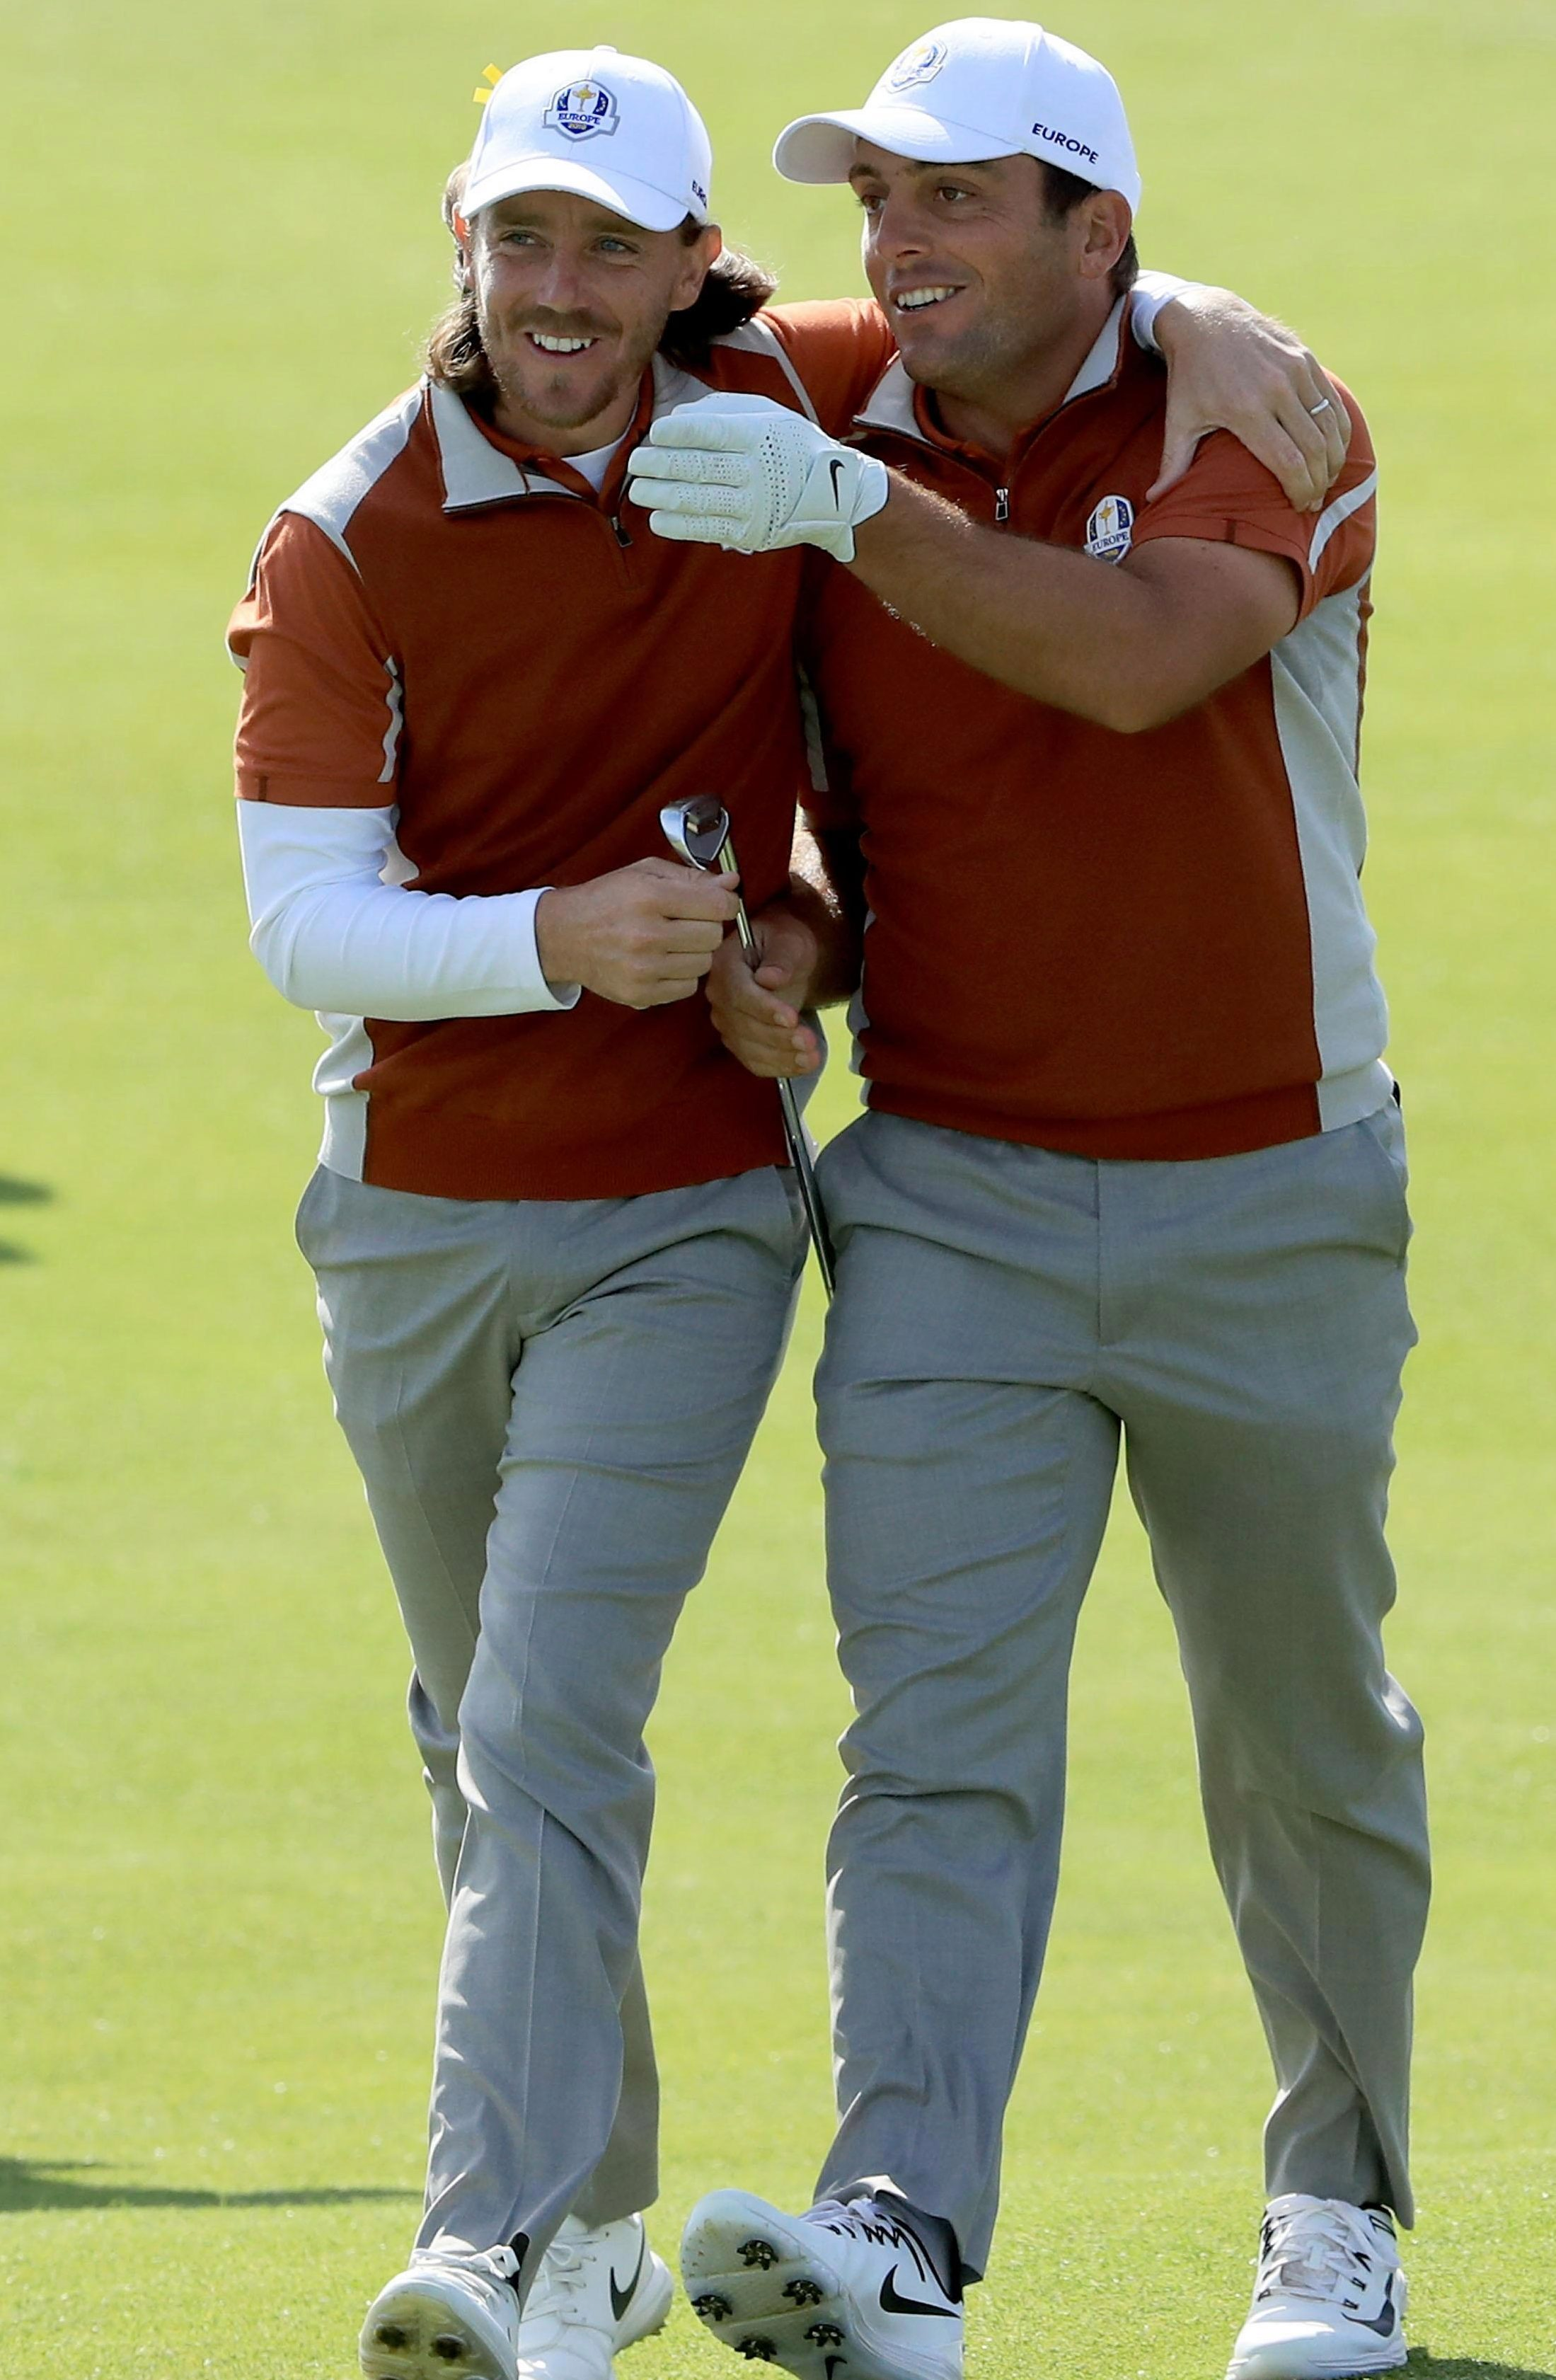 Francesco Molinari and Tommy Fleetwood have the type of understanding that could make them big pulls for PPV